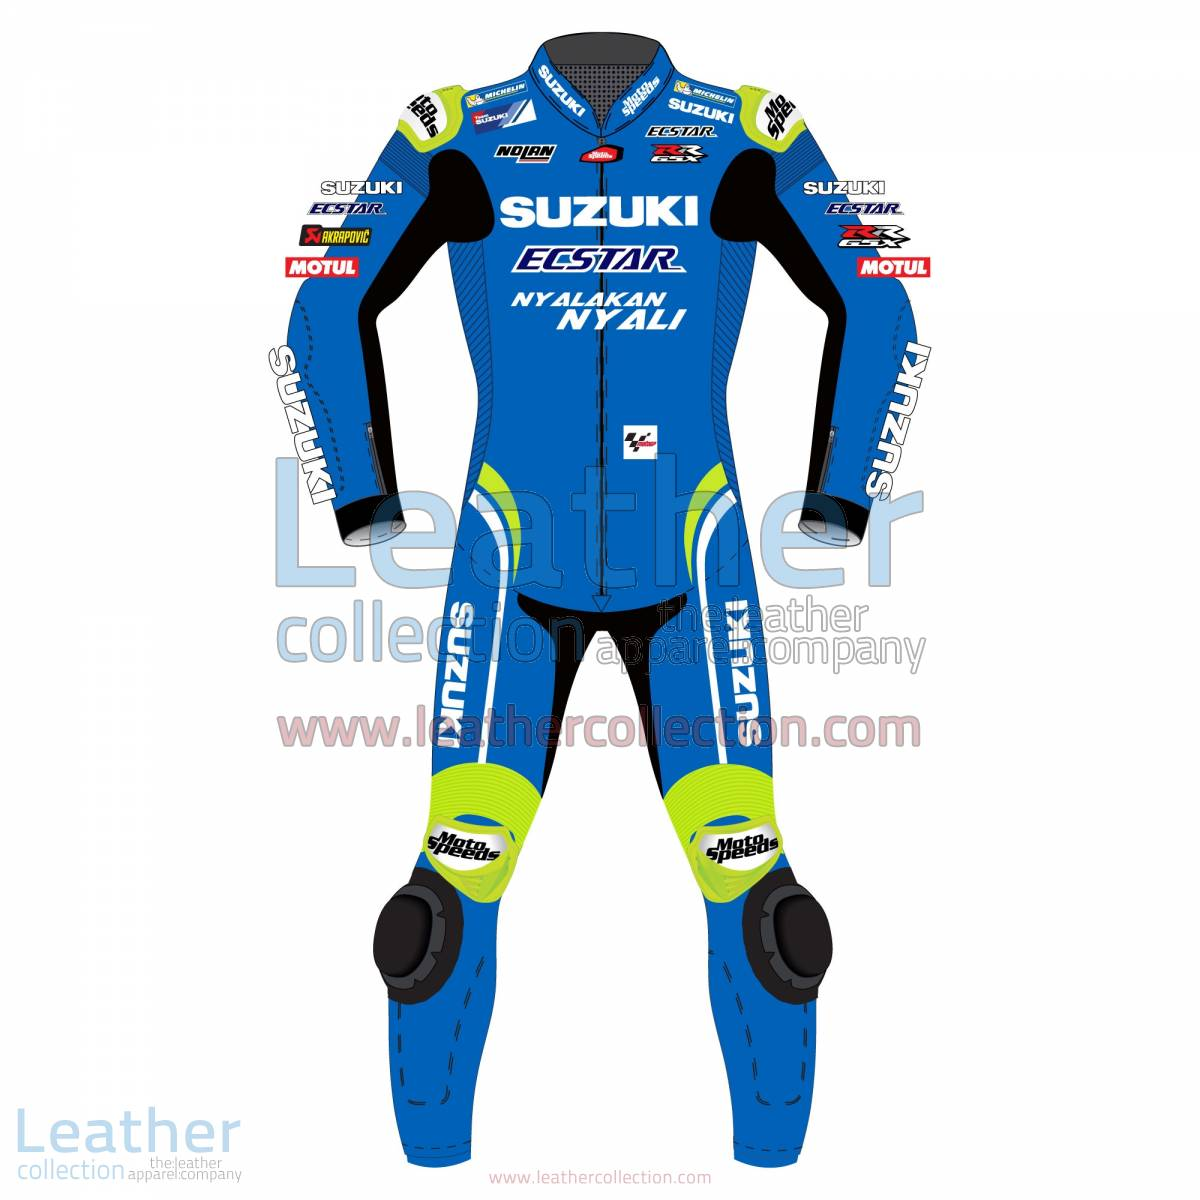 Alex Rins Suzuki MotoGP 2018 Leather Suit | Alex Rins Suzuki MotoGP 2018 Leather Suit